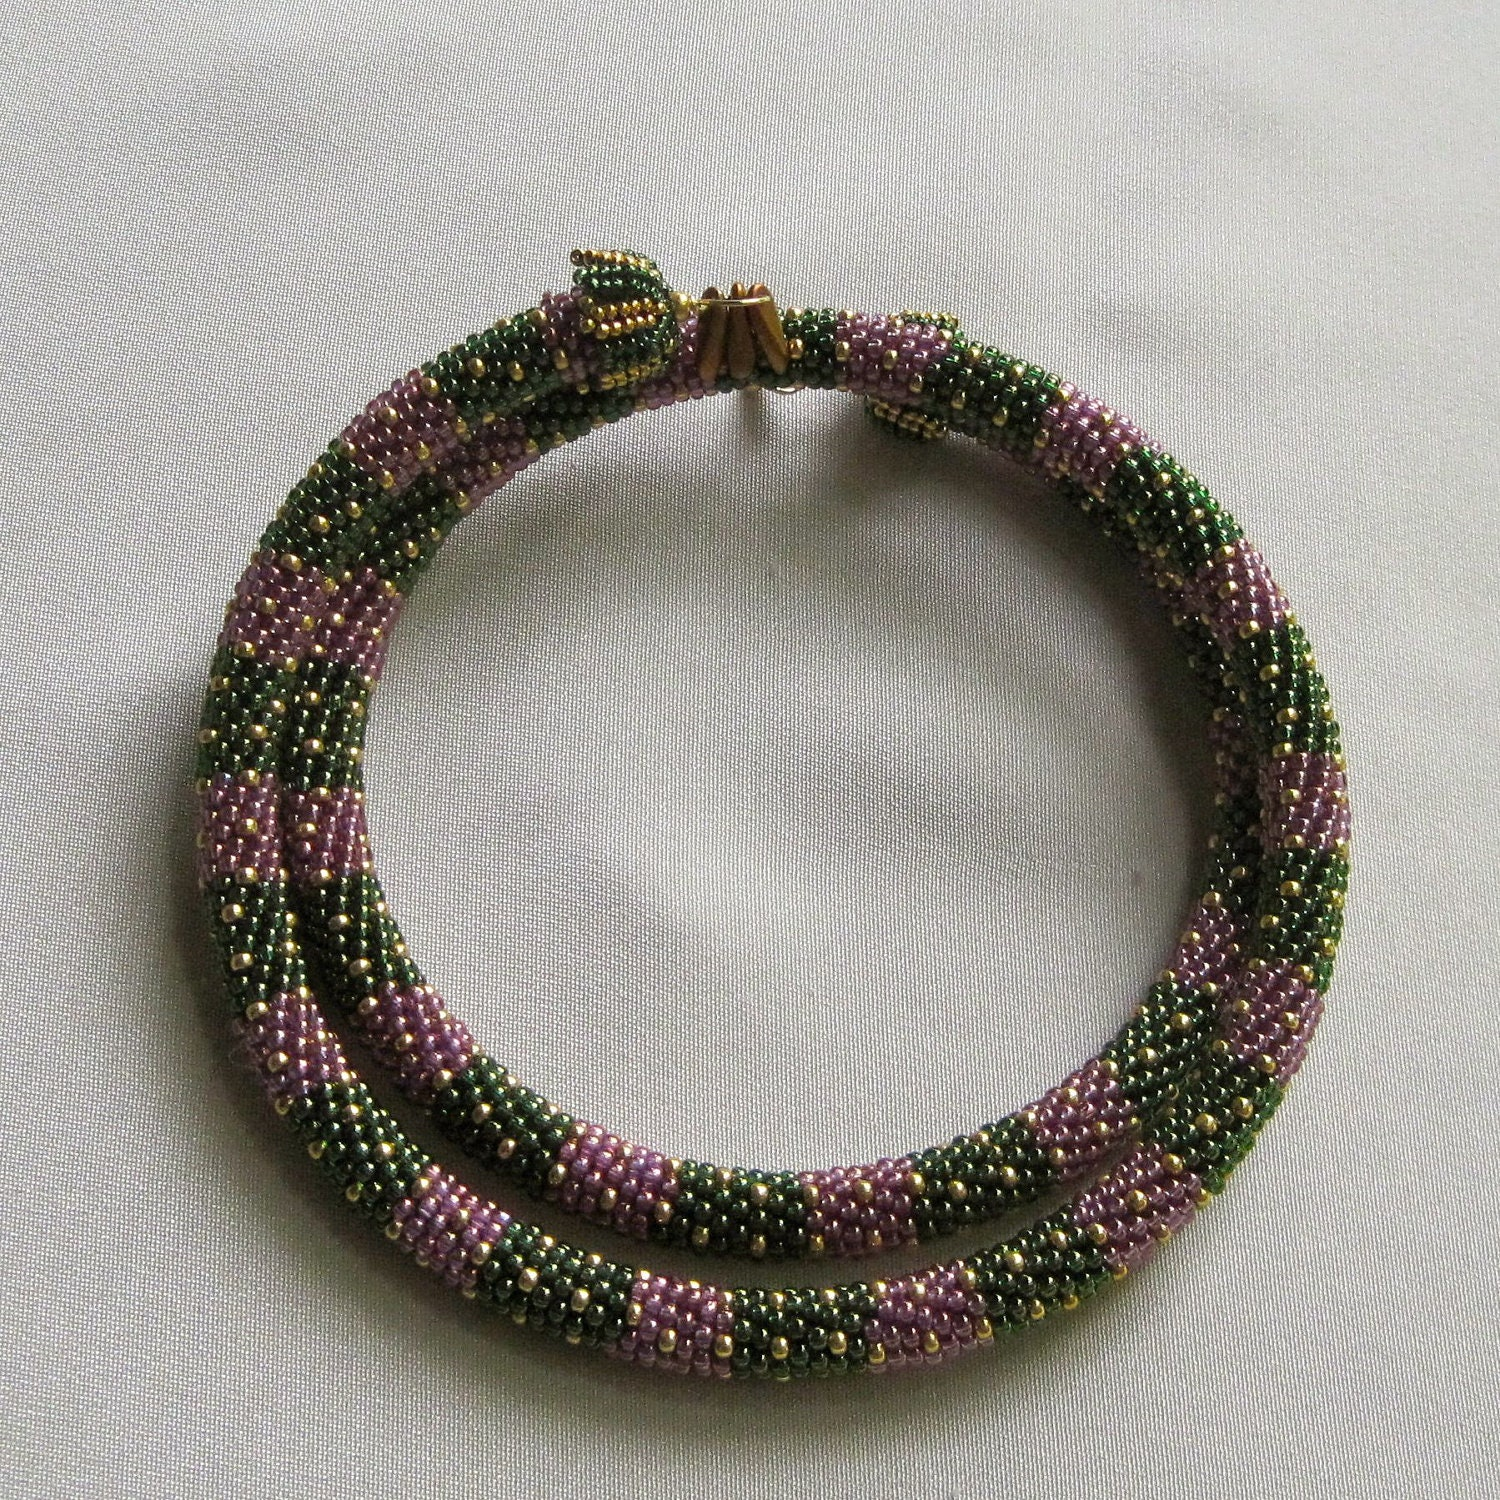 how to add a bead to a crochet necklace